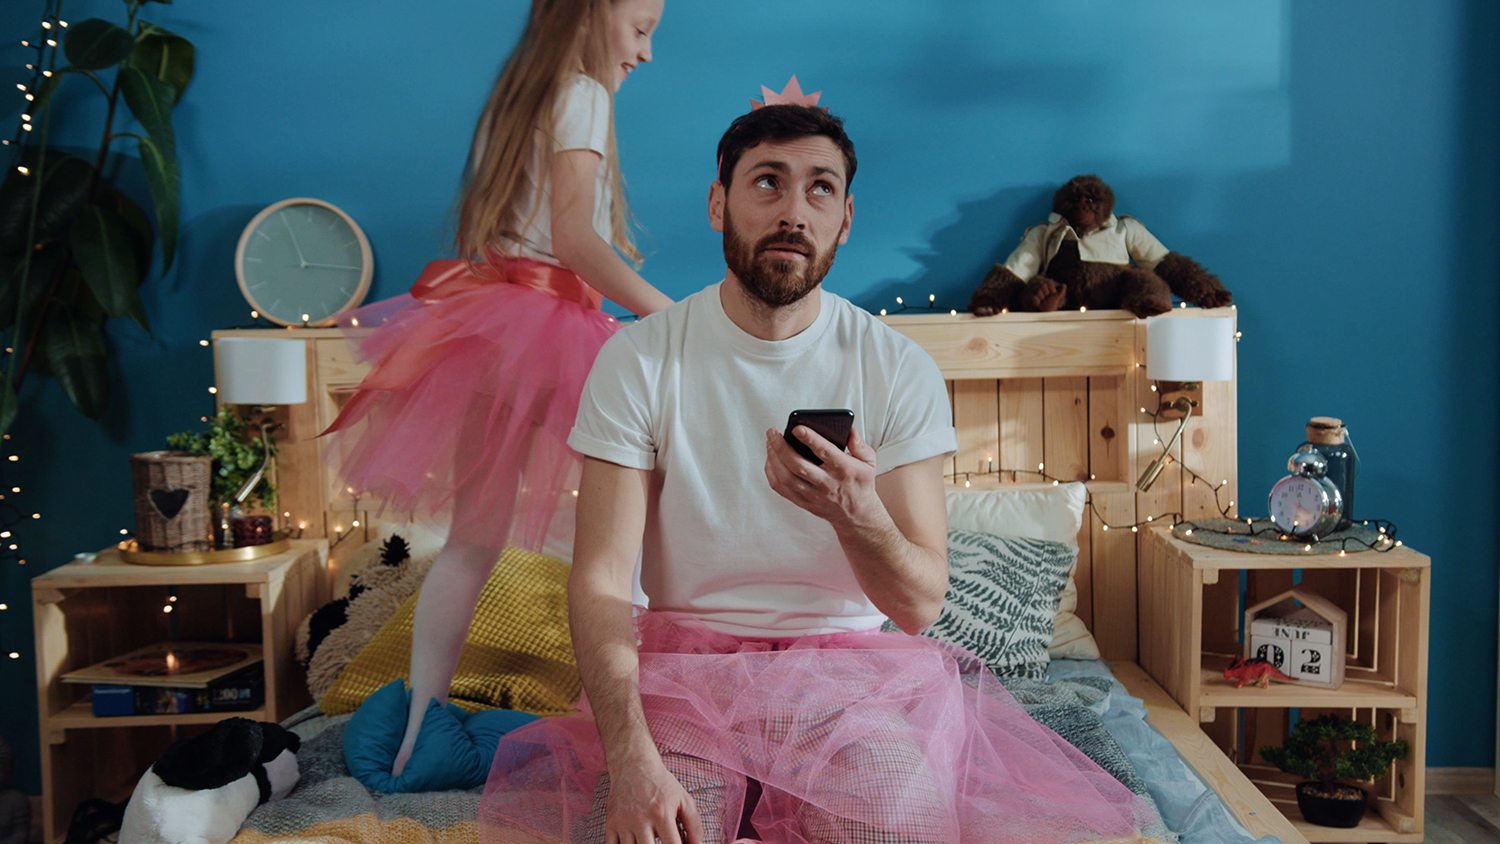 Portrait of tired bored young man in fairy dress using a smartphone sitting on bed. Happy princess girl dancing around waving magic wand playing with her daddy at home.